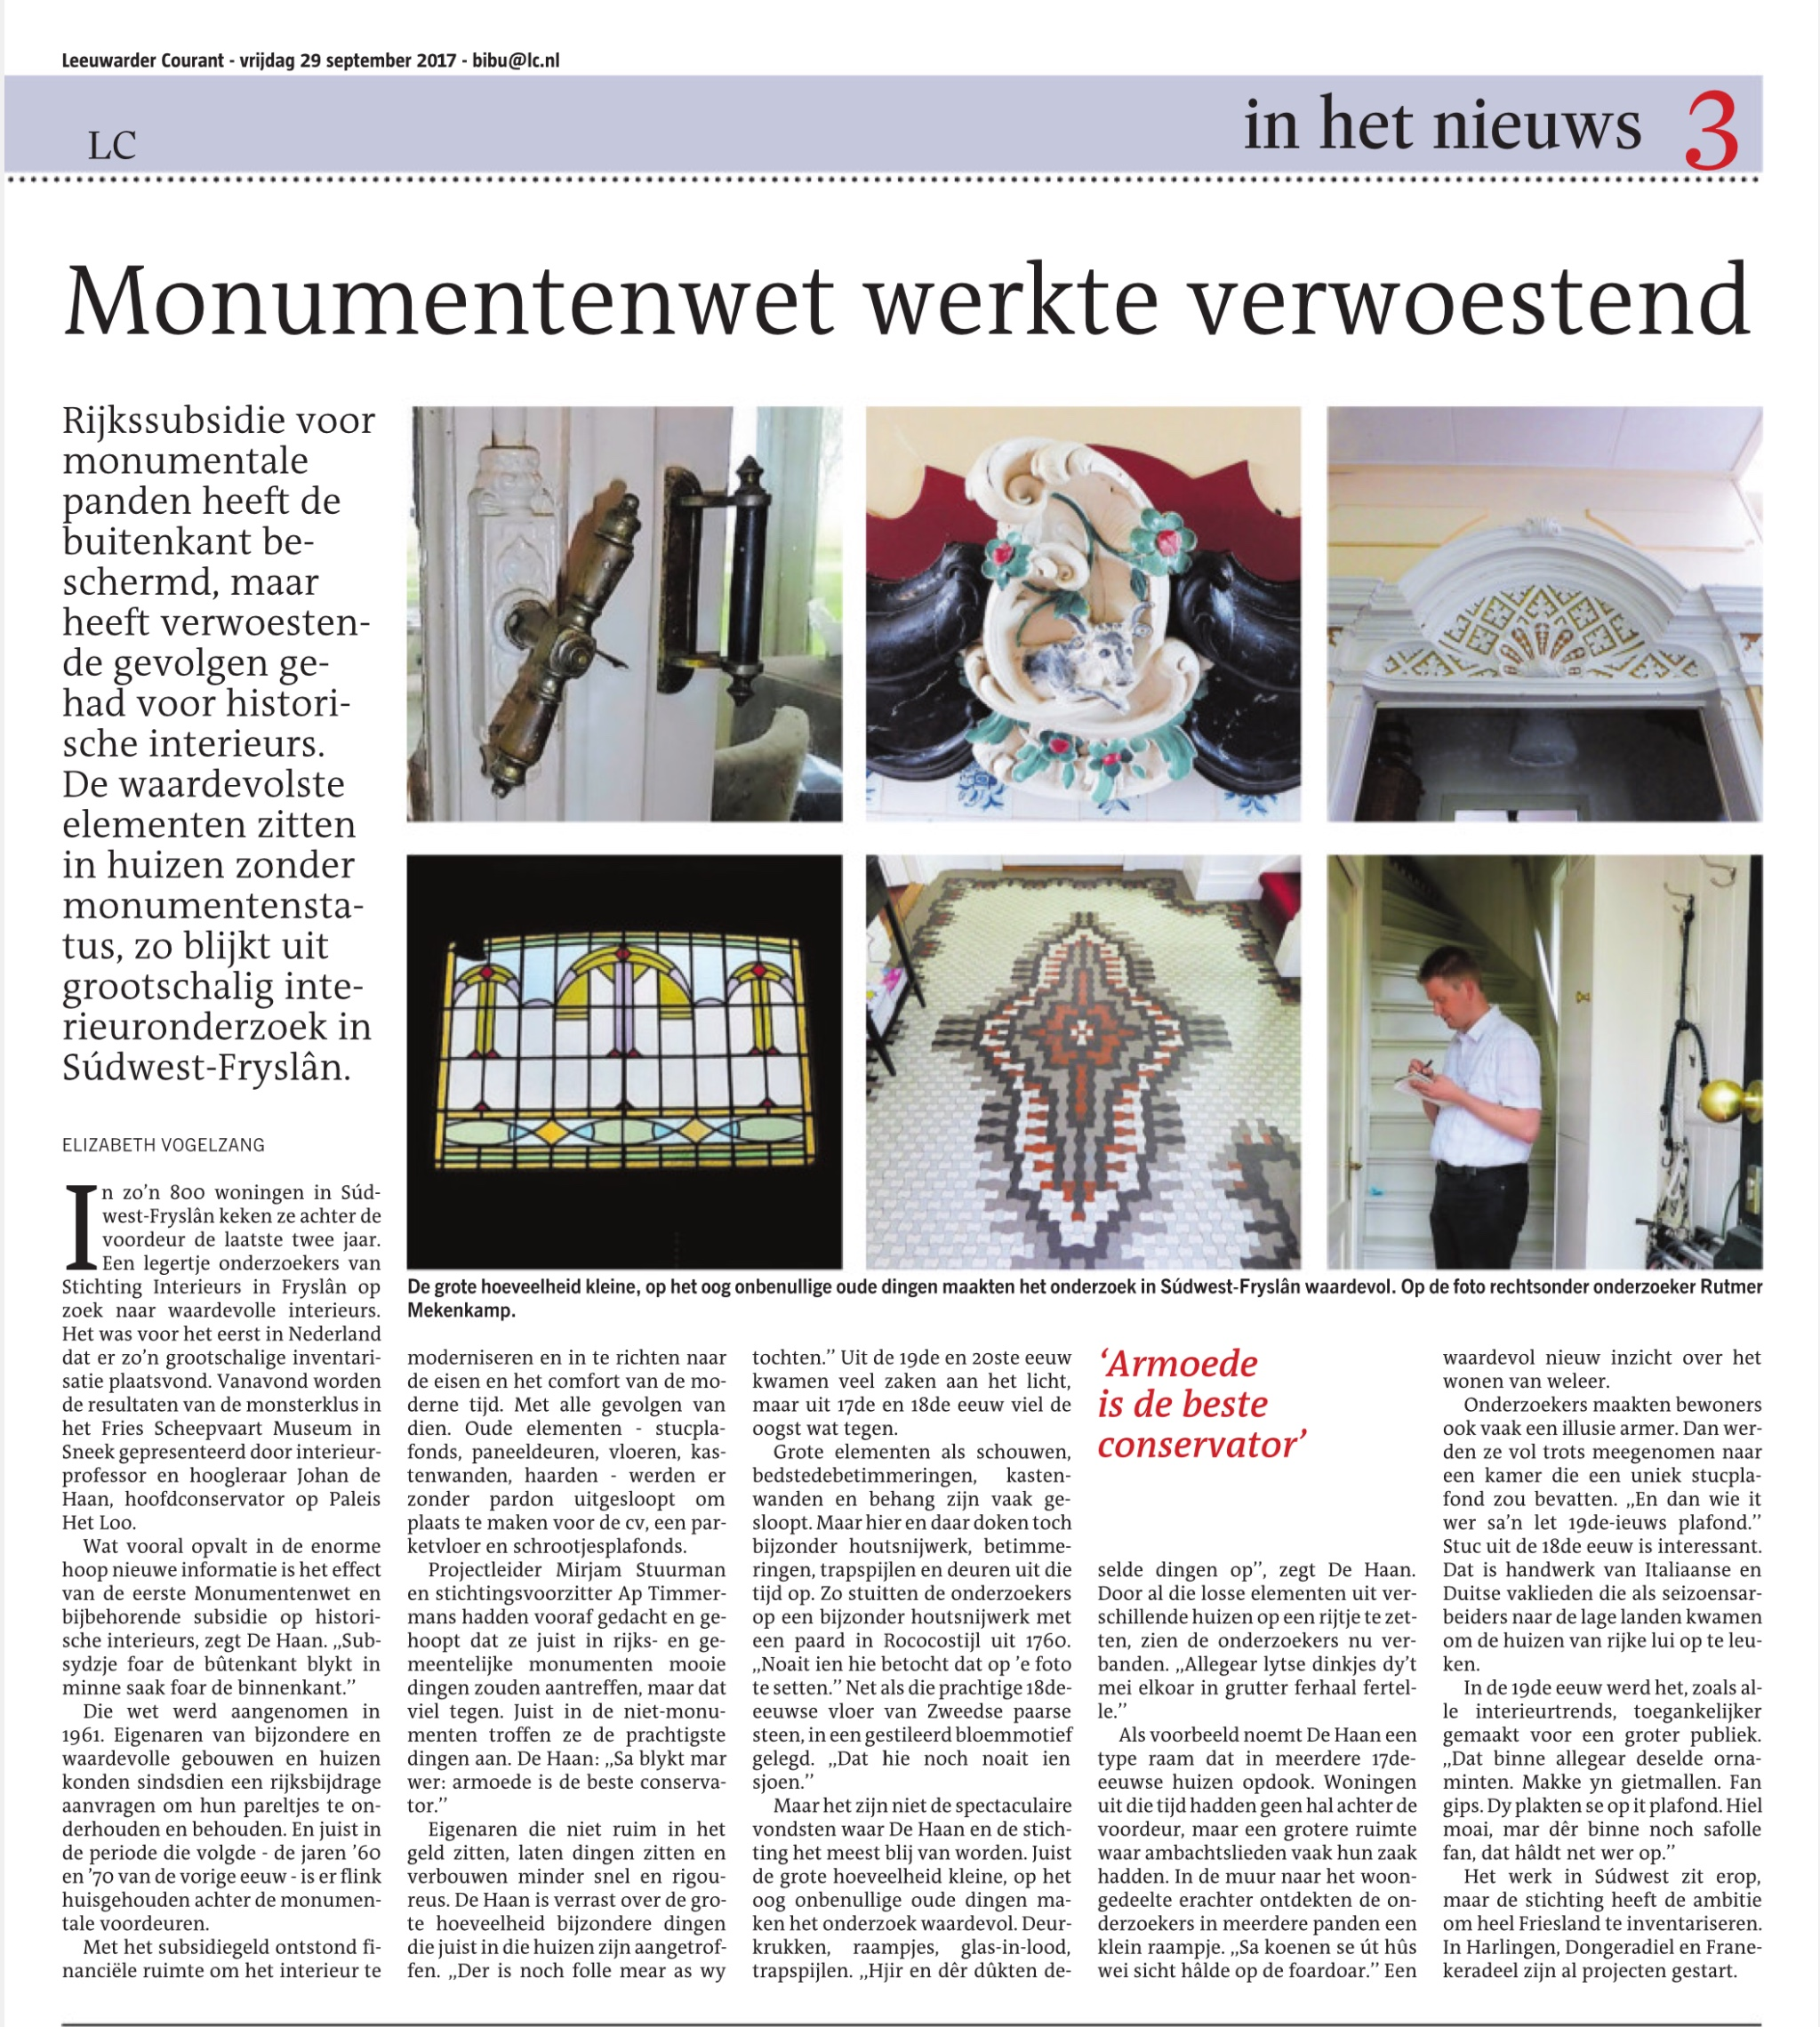 Artikel in LC 29 sept 2017